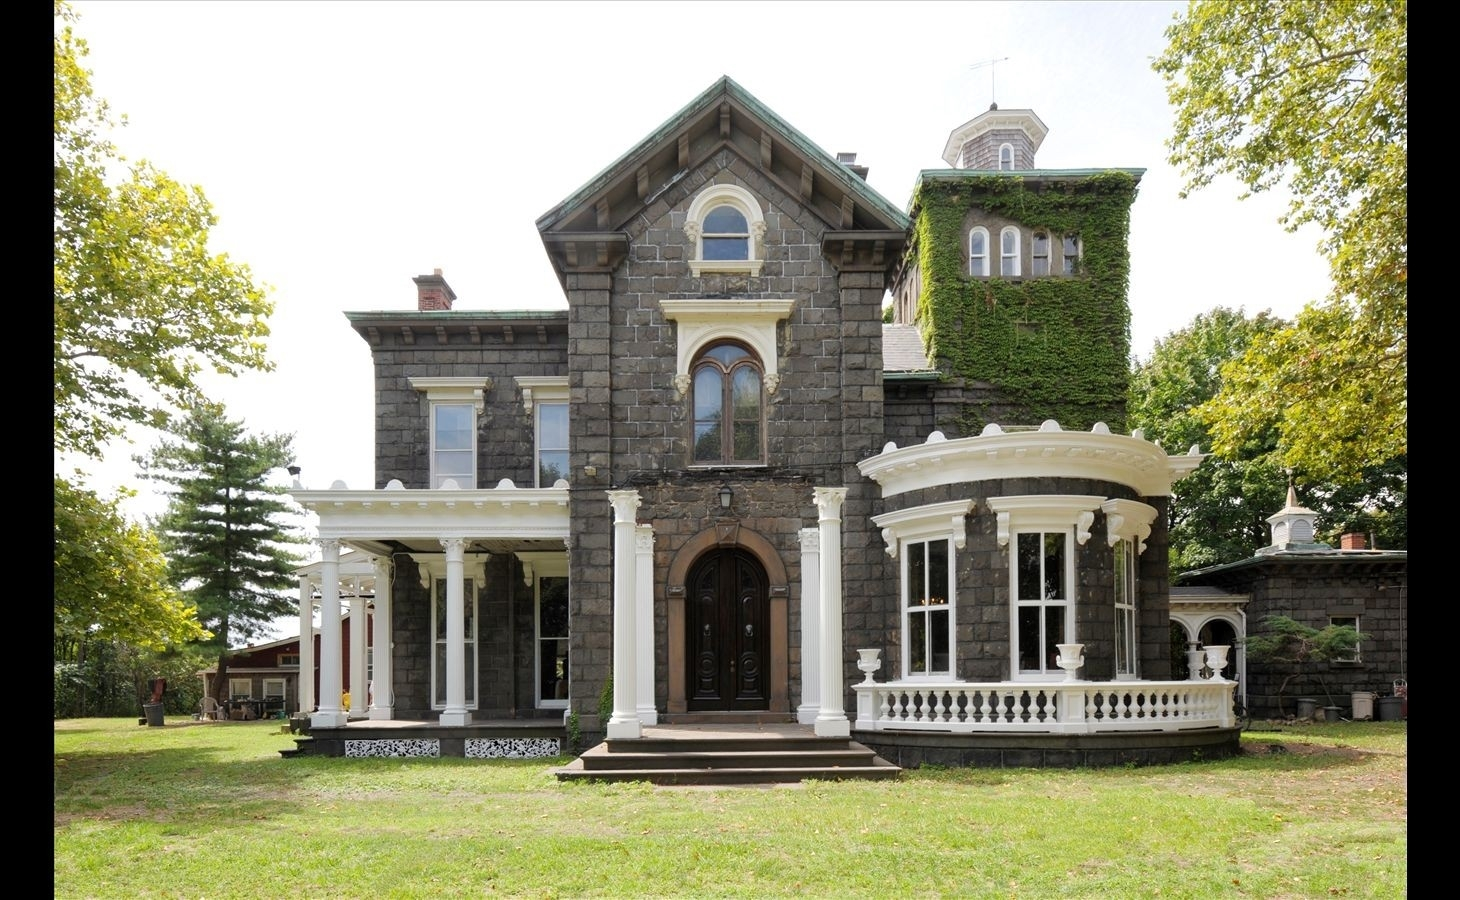 2. THE STEINWAY MANSION建於18-33 41st St, Astoria, Queens, NY